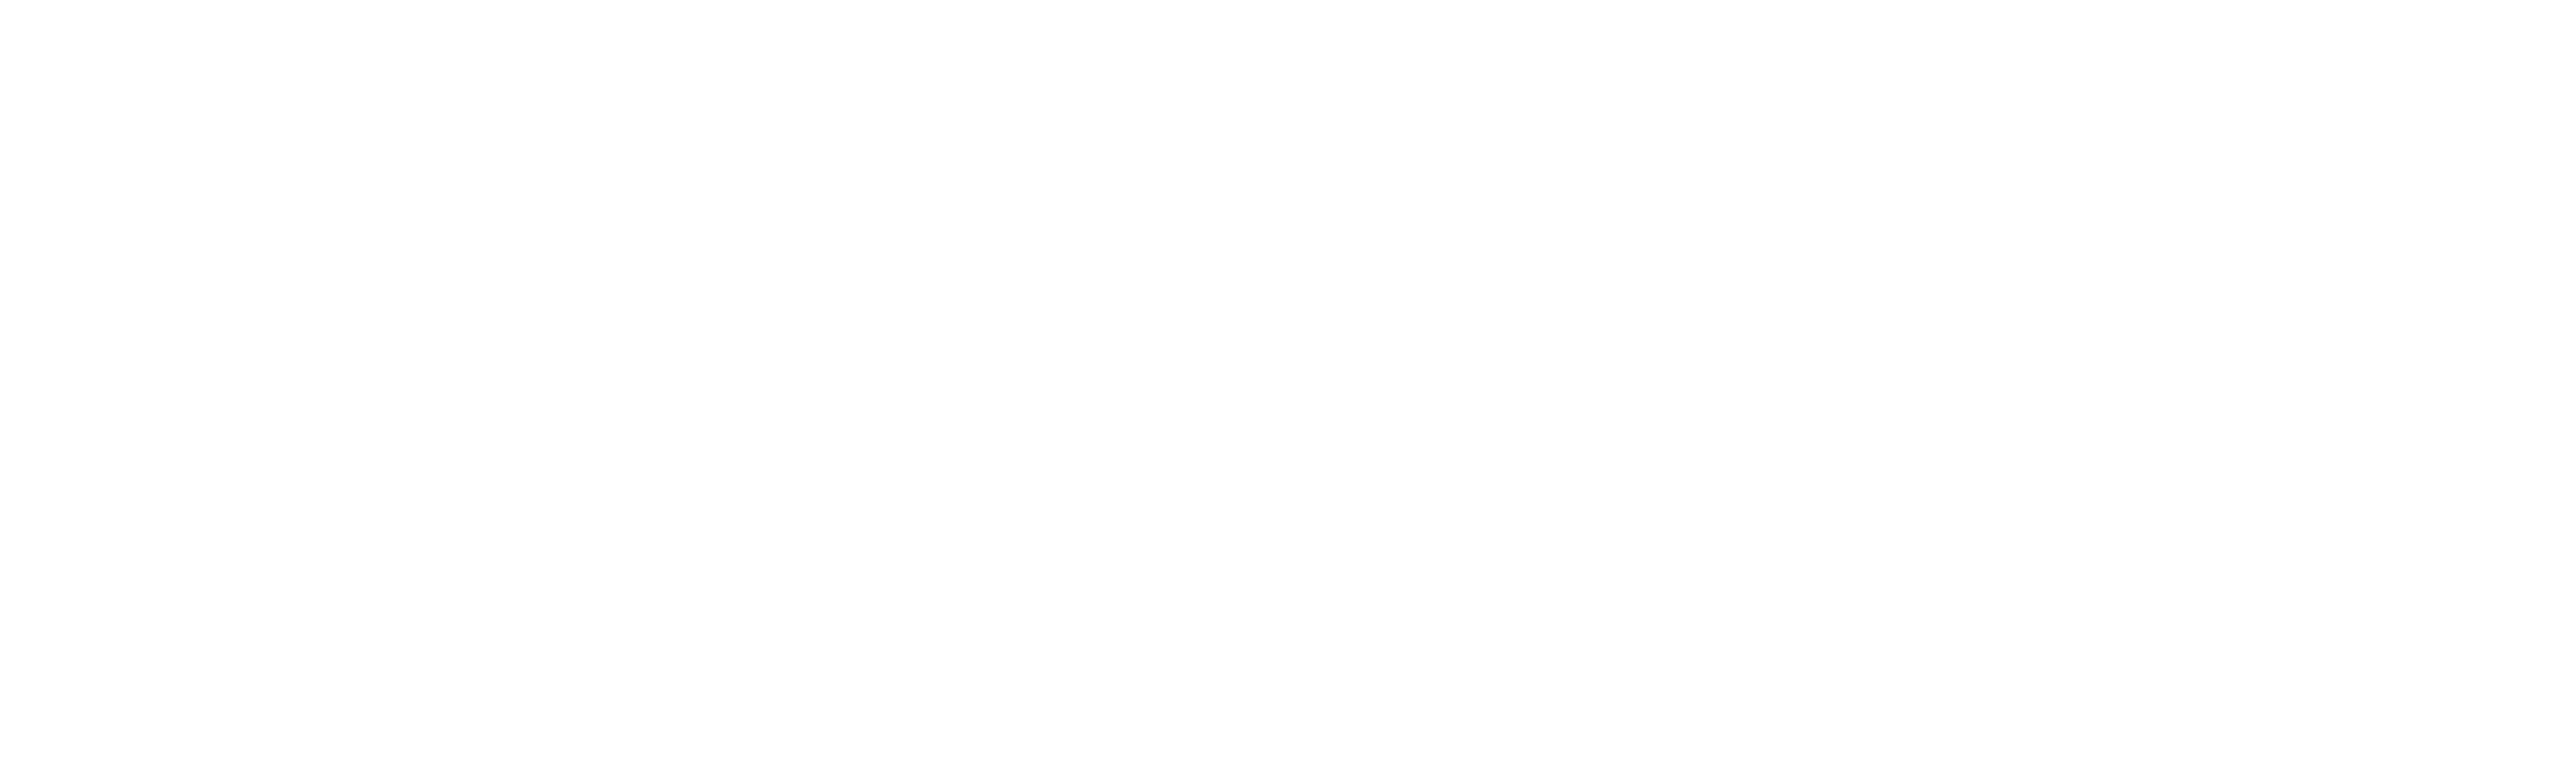 endless events full transparent white